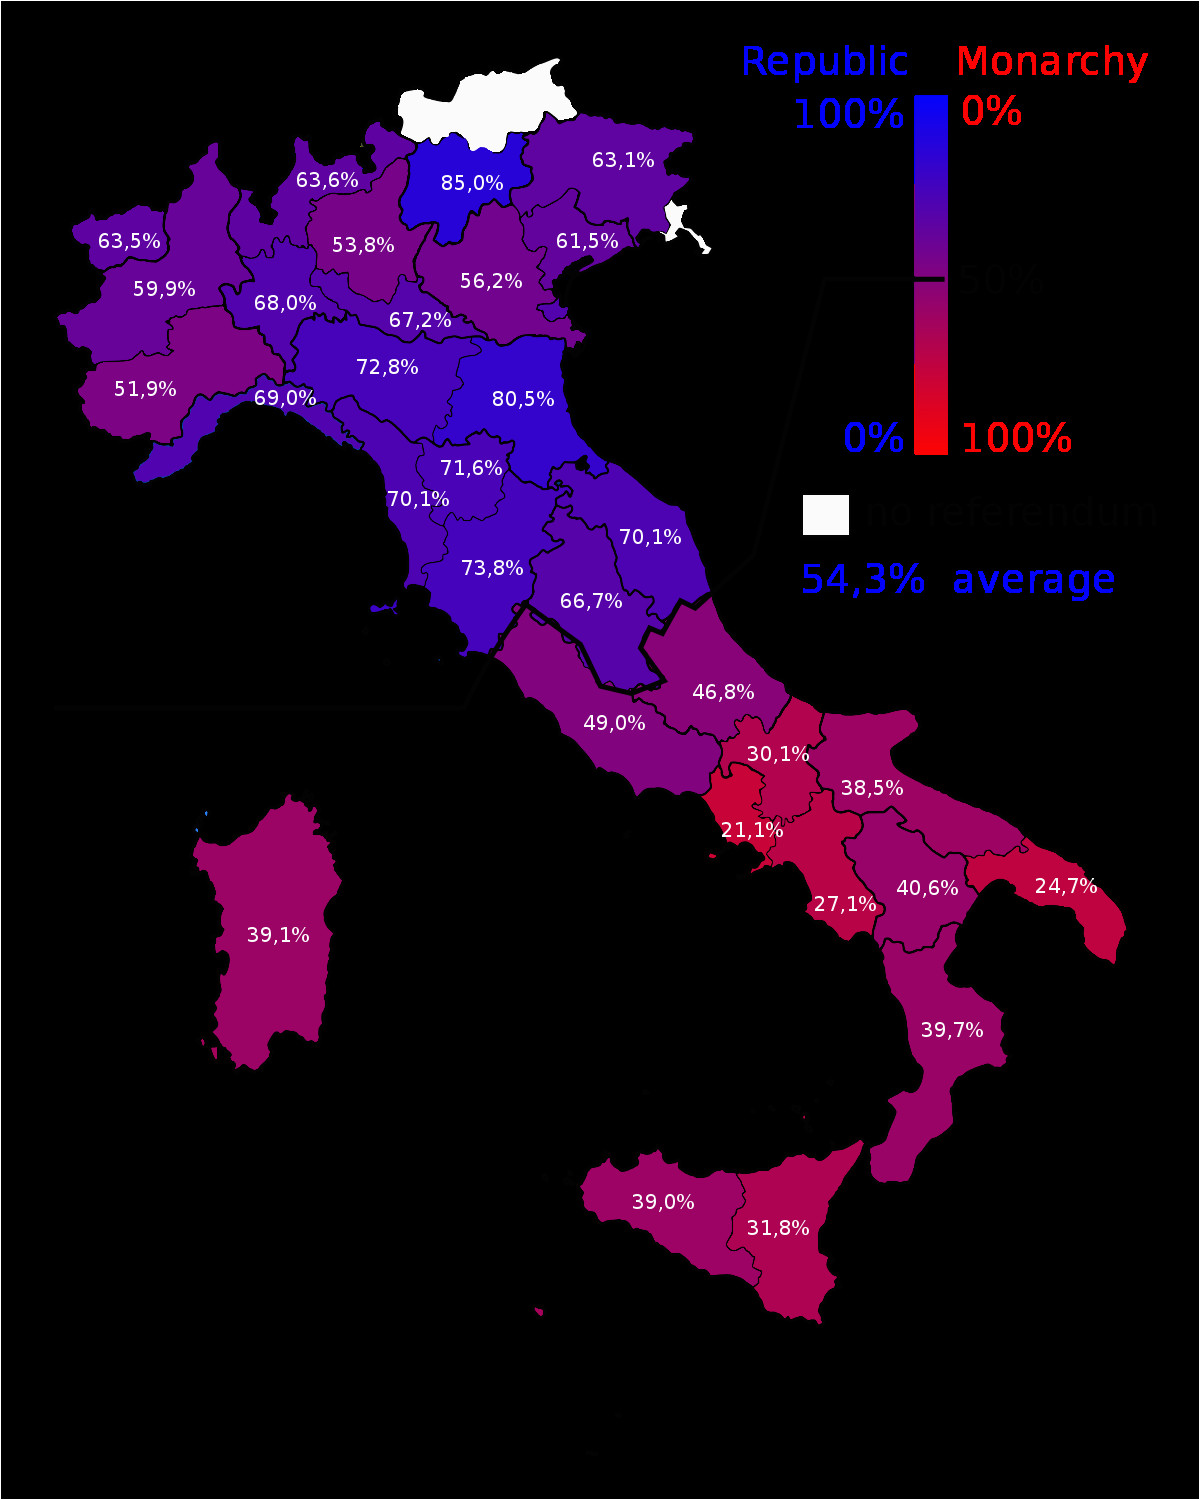 the 1946 referendum on whether italy should remain a